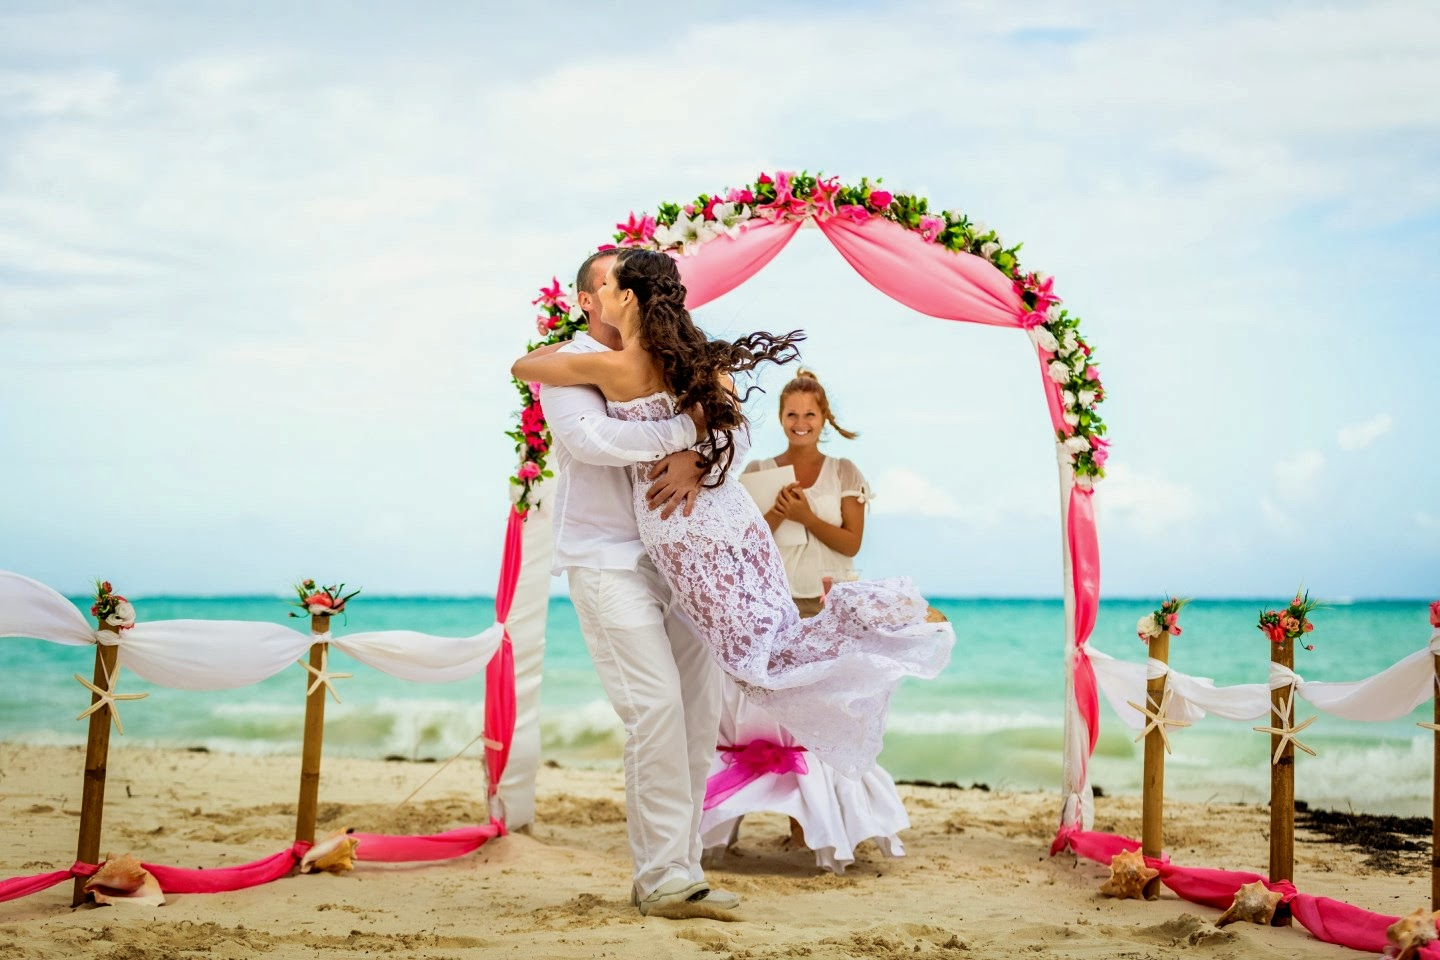 www.tvn.hu imagesize:1440x960 lsm 2 The ceremony took place on the beach in front of the Sanctuary Hotel in Cap Cana. We wrote the vows and Caribbean Wedding Agency kindly printed it out and ...